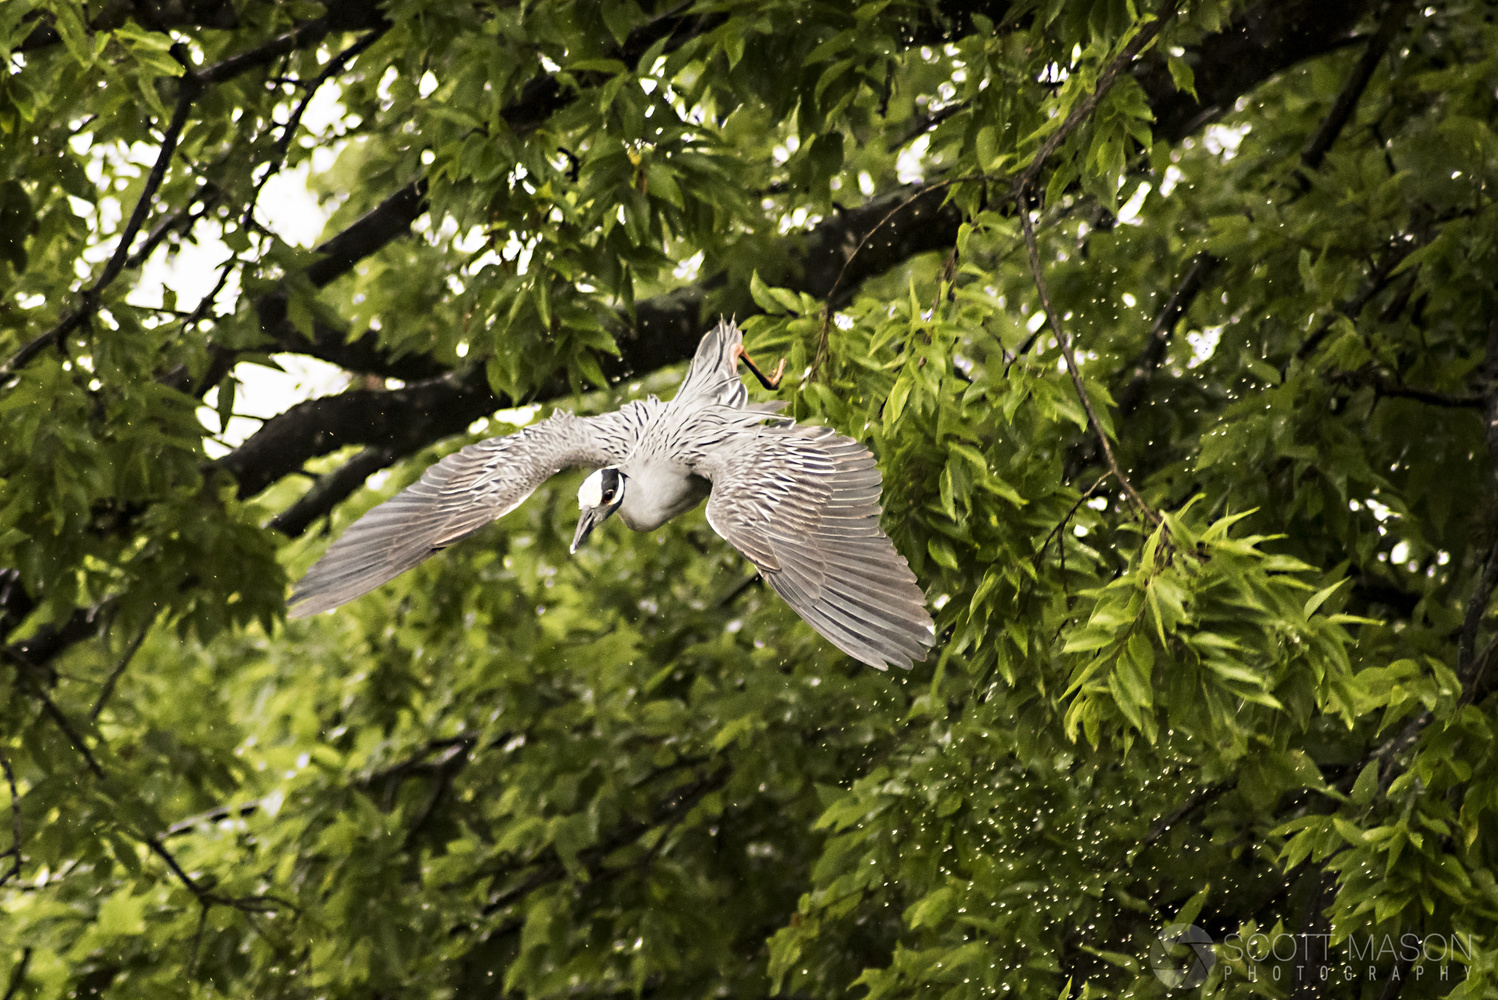 a night heron diving from a tree branch